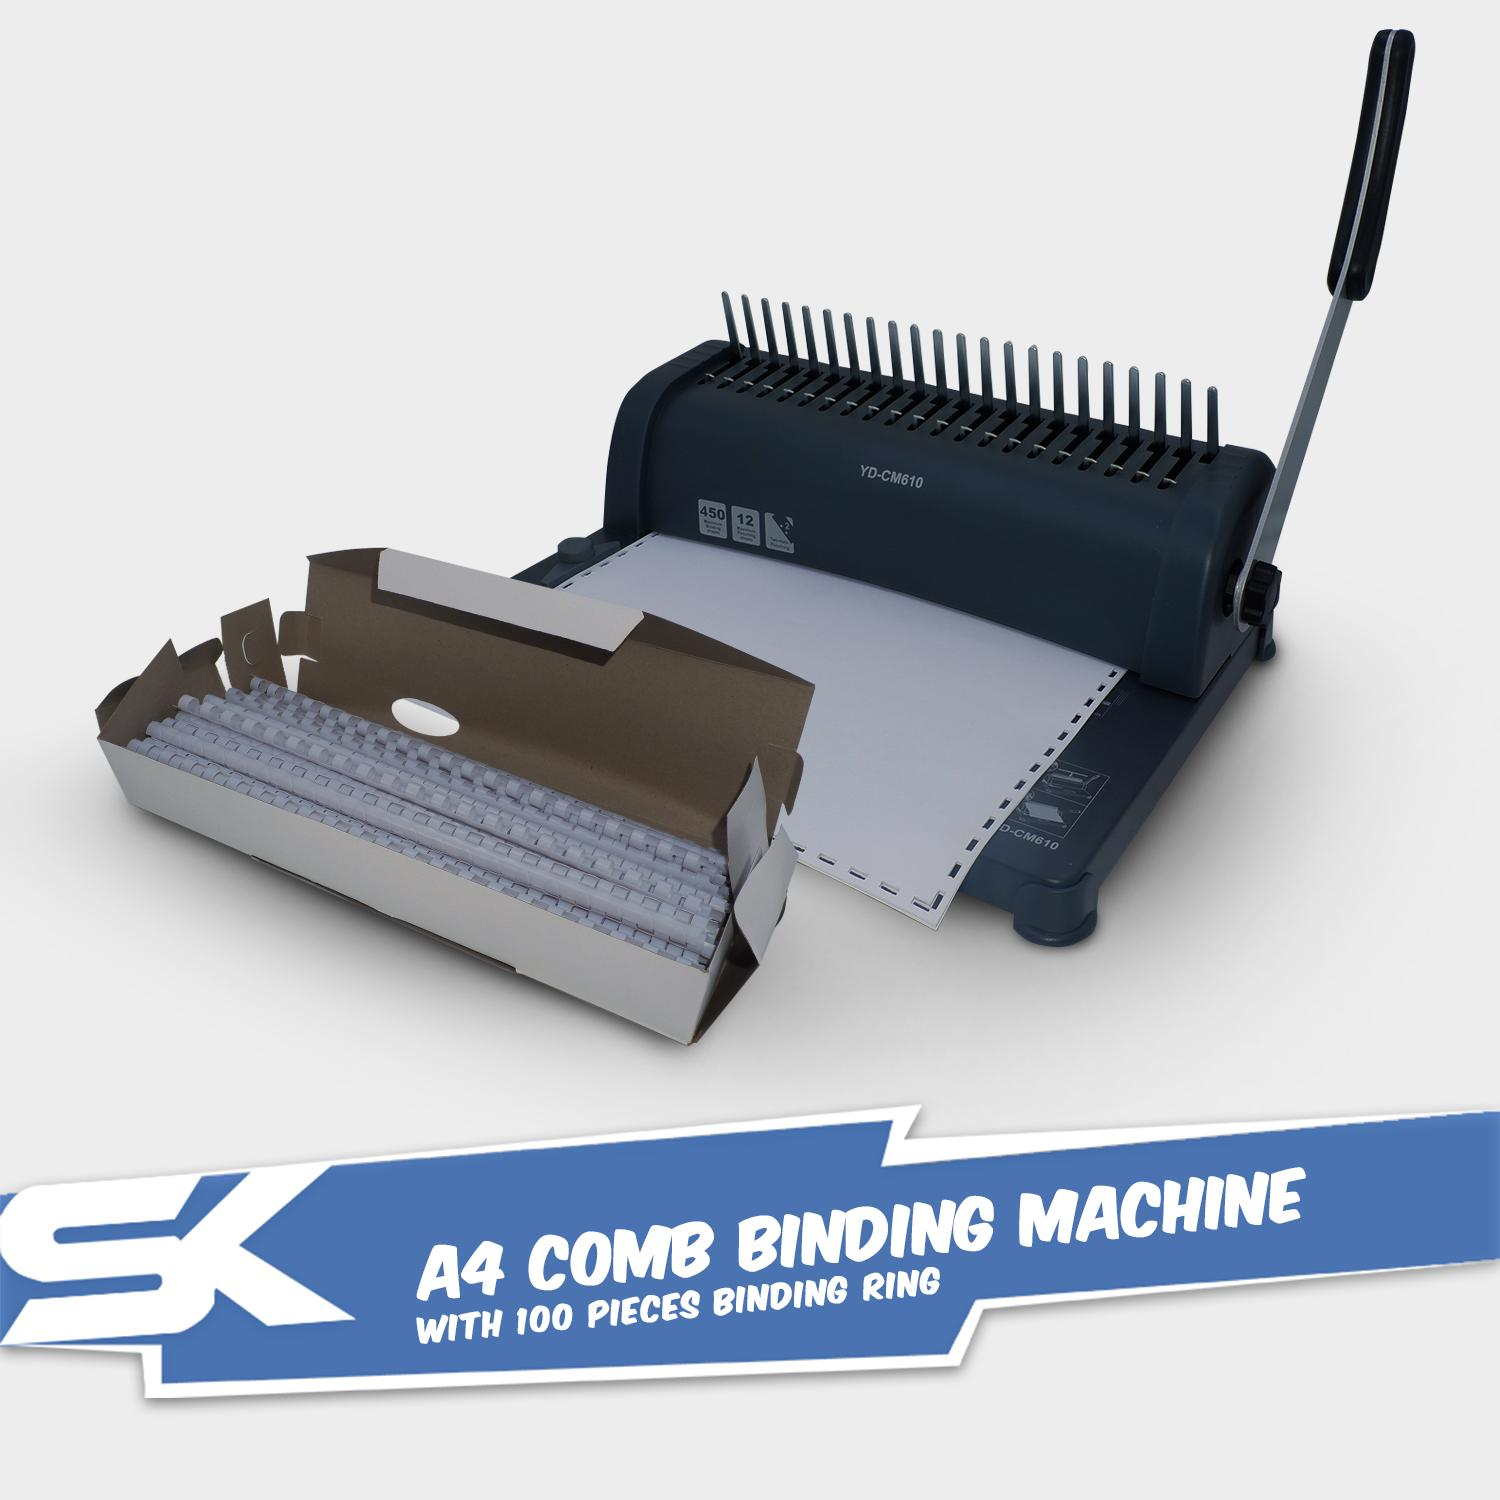 Office A4 Comb Binding Machine Bundle with 100 Pieces White Binding Rings